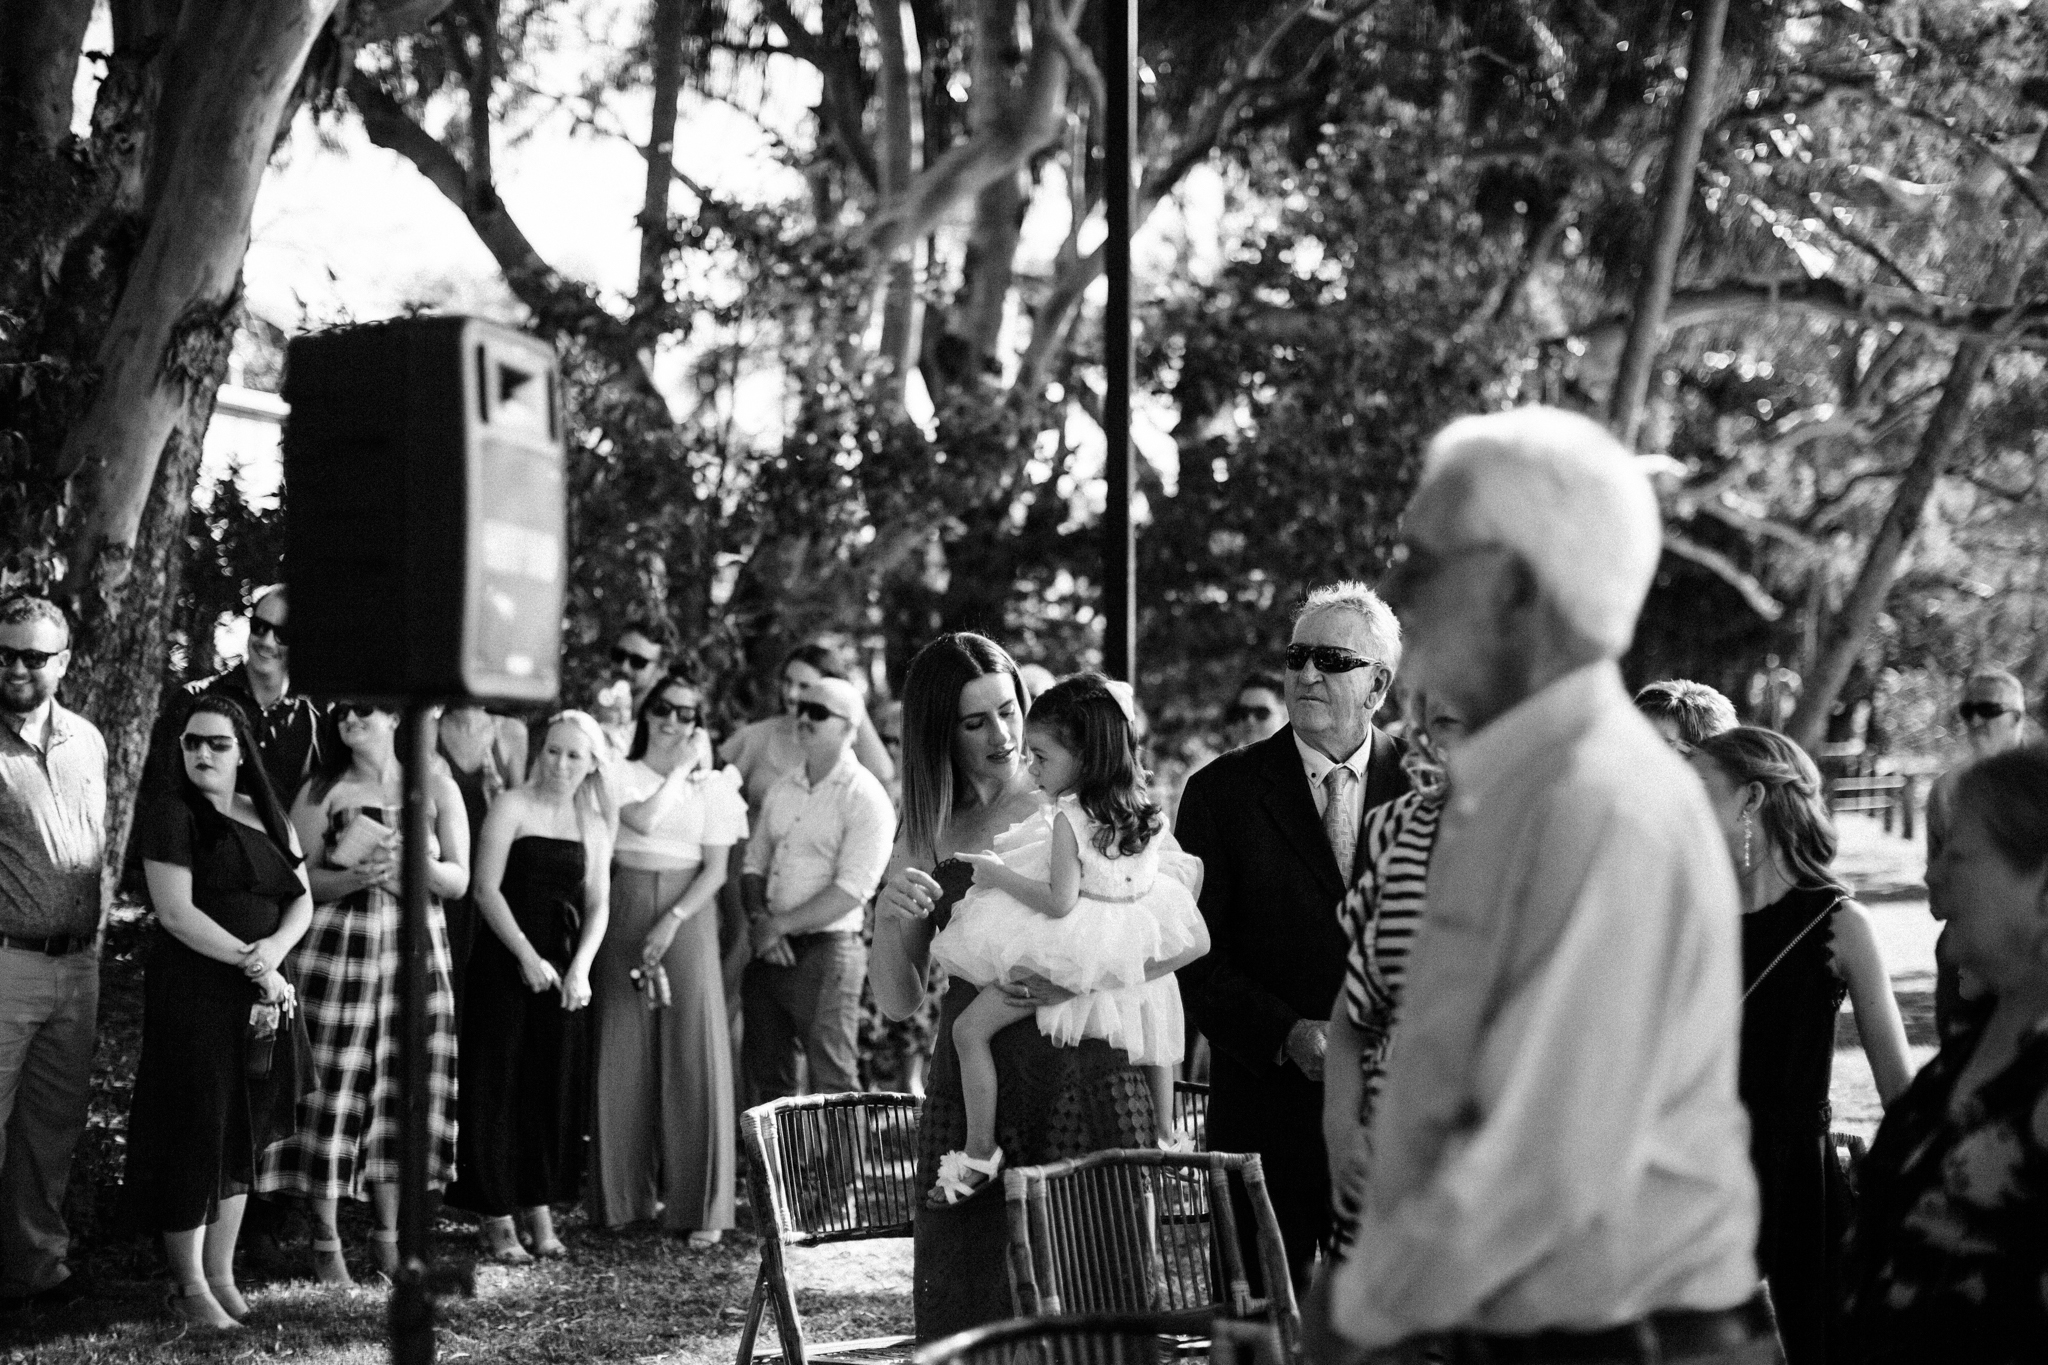 noosa wedding photography-32.jpg